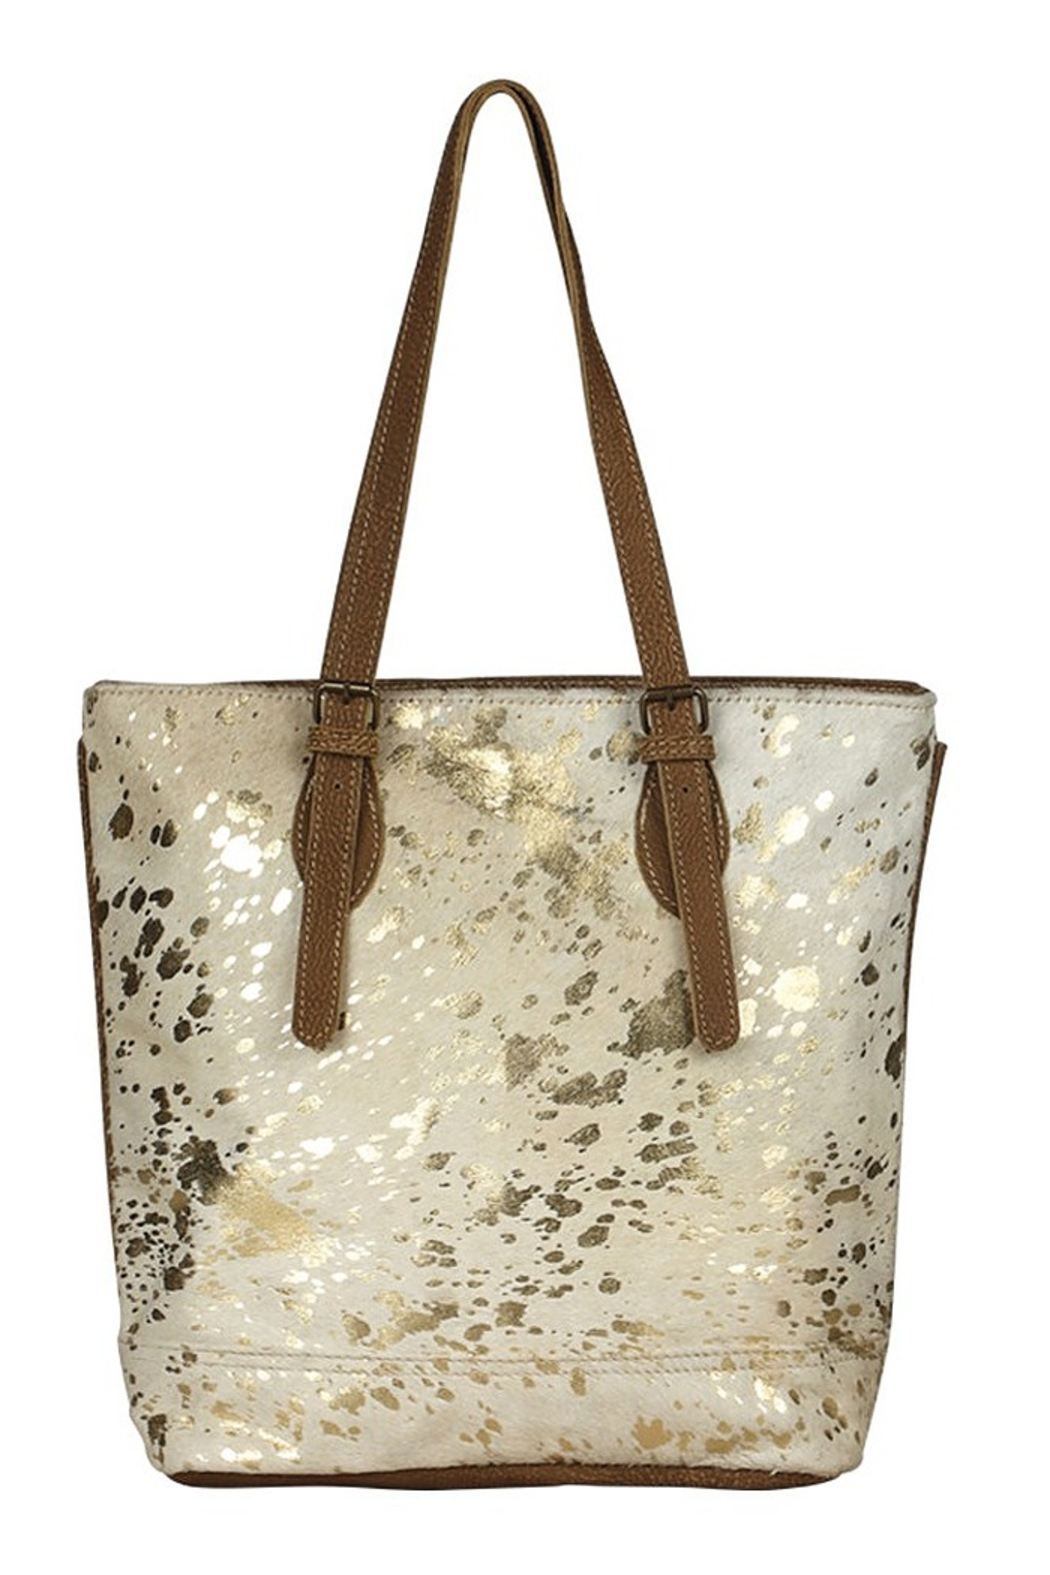 Myra Bags Tinges Cowhide Leather Tote Bag - Front Full Image